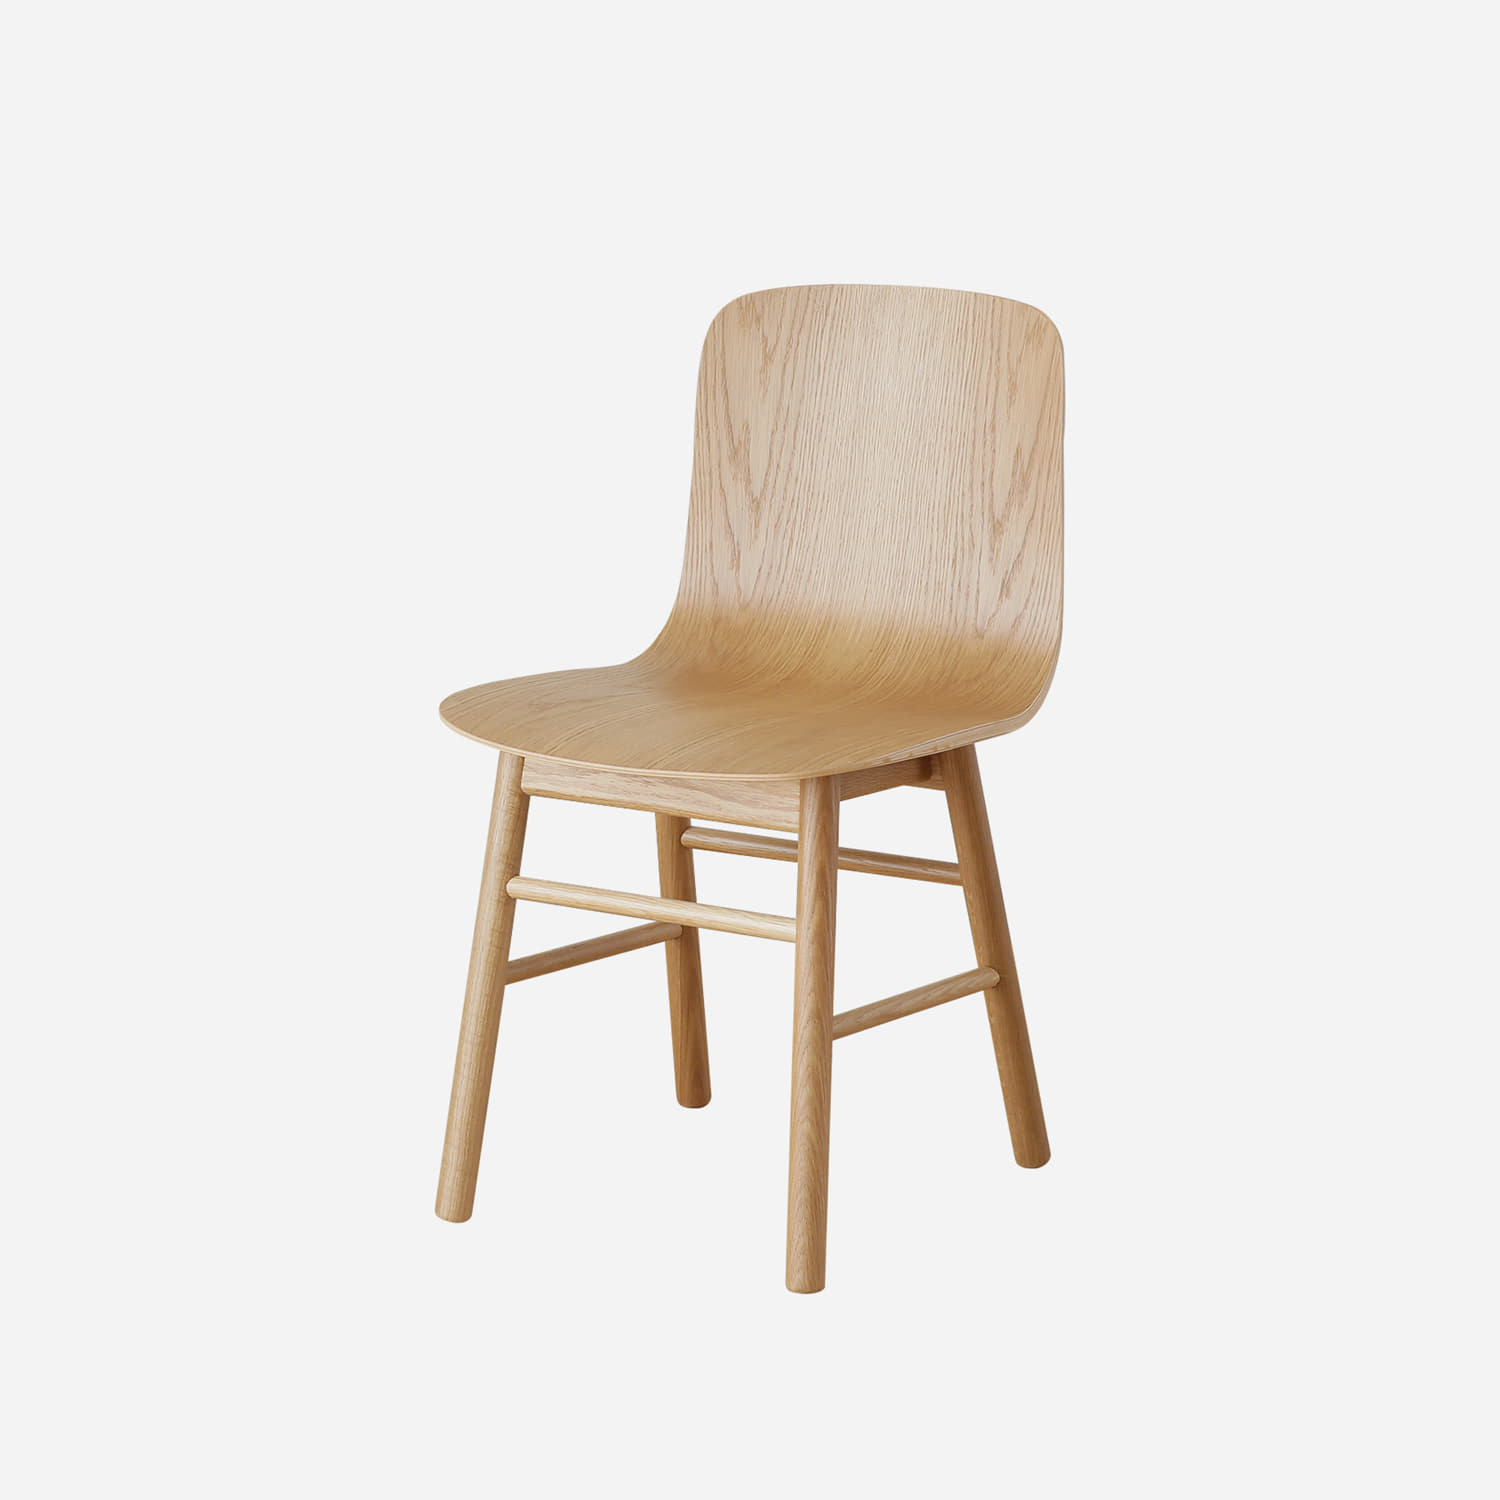 [얼리버드] Oblique Stick Leg P1 Chair (manufactured by China)